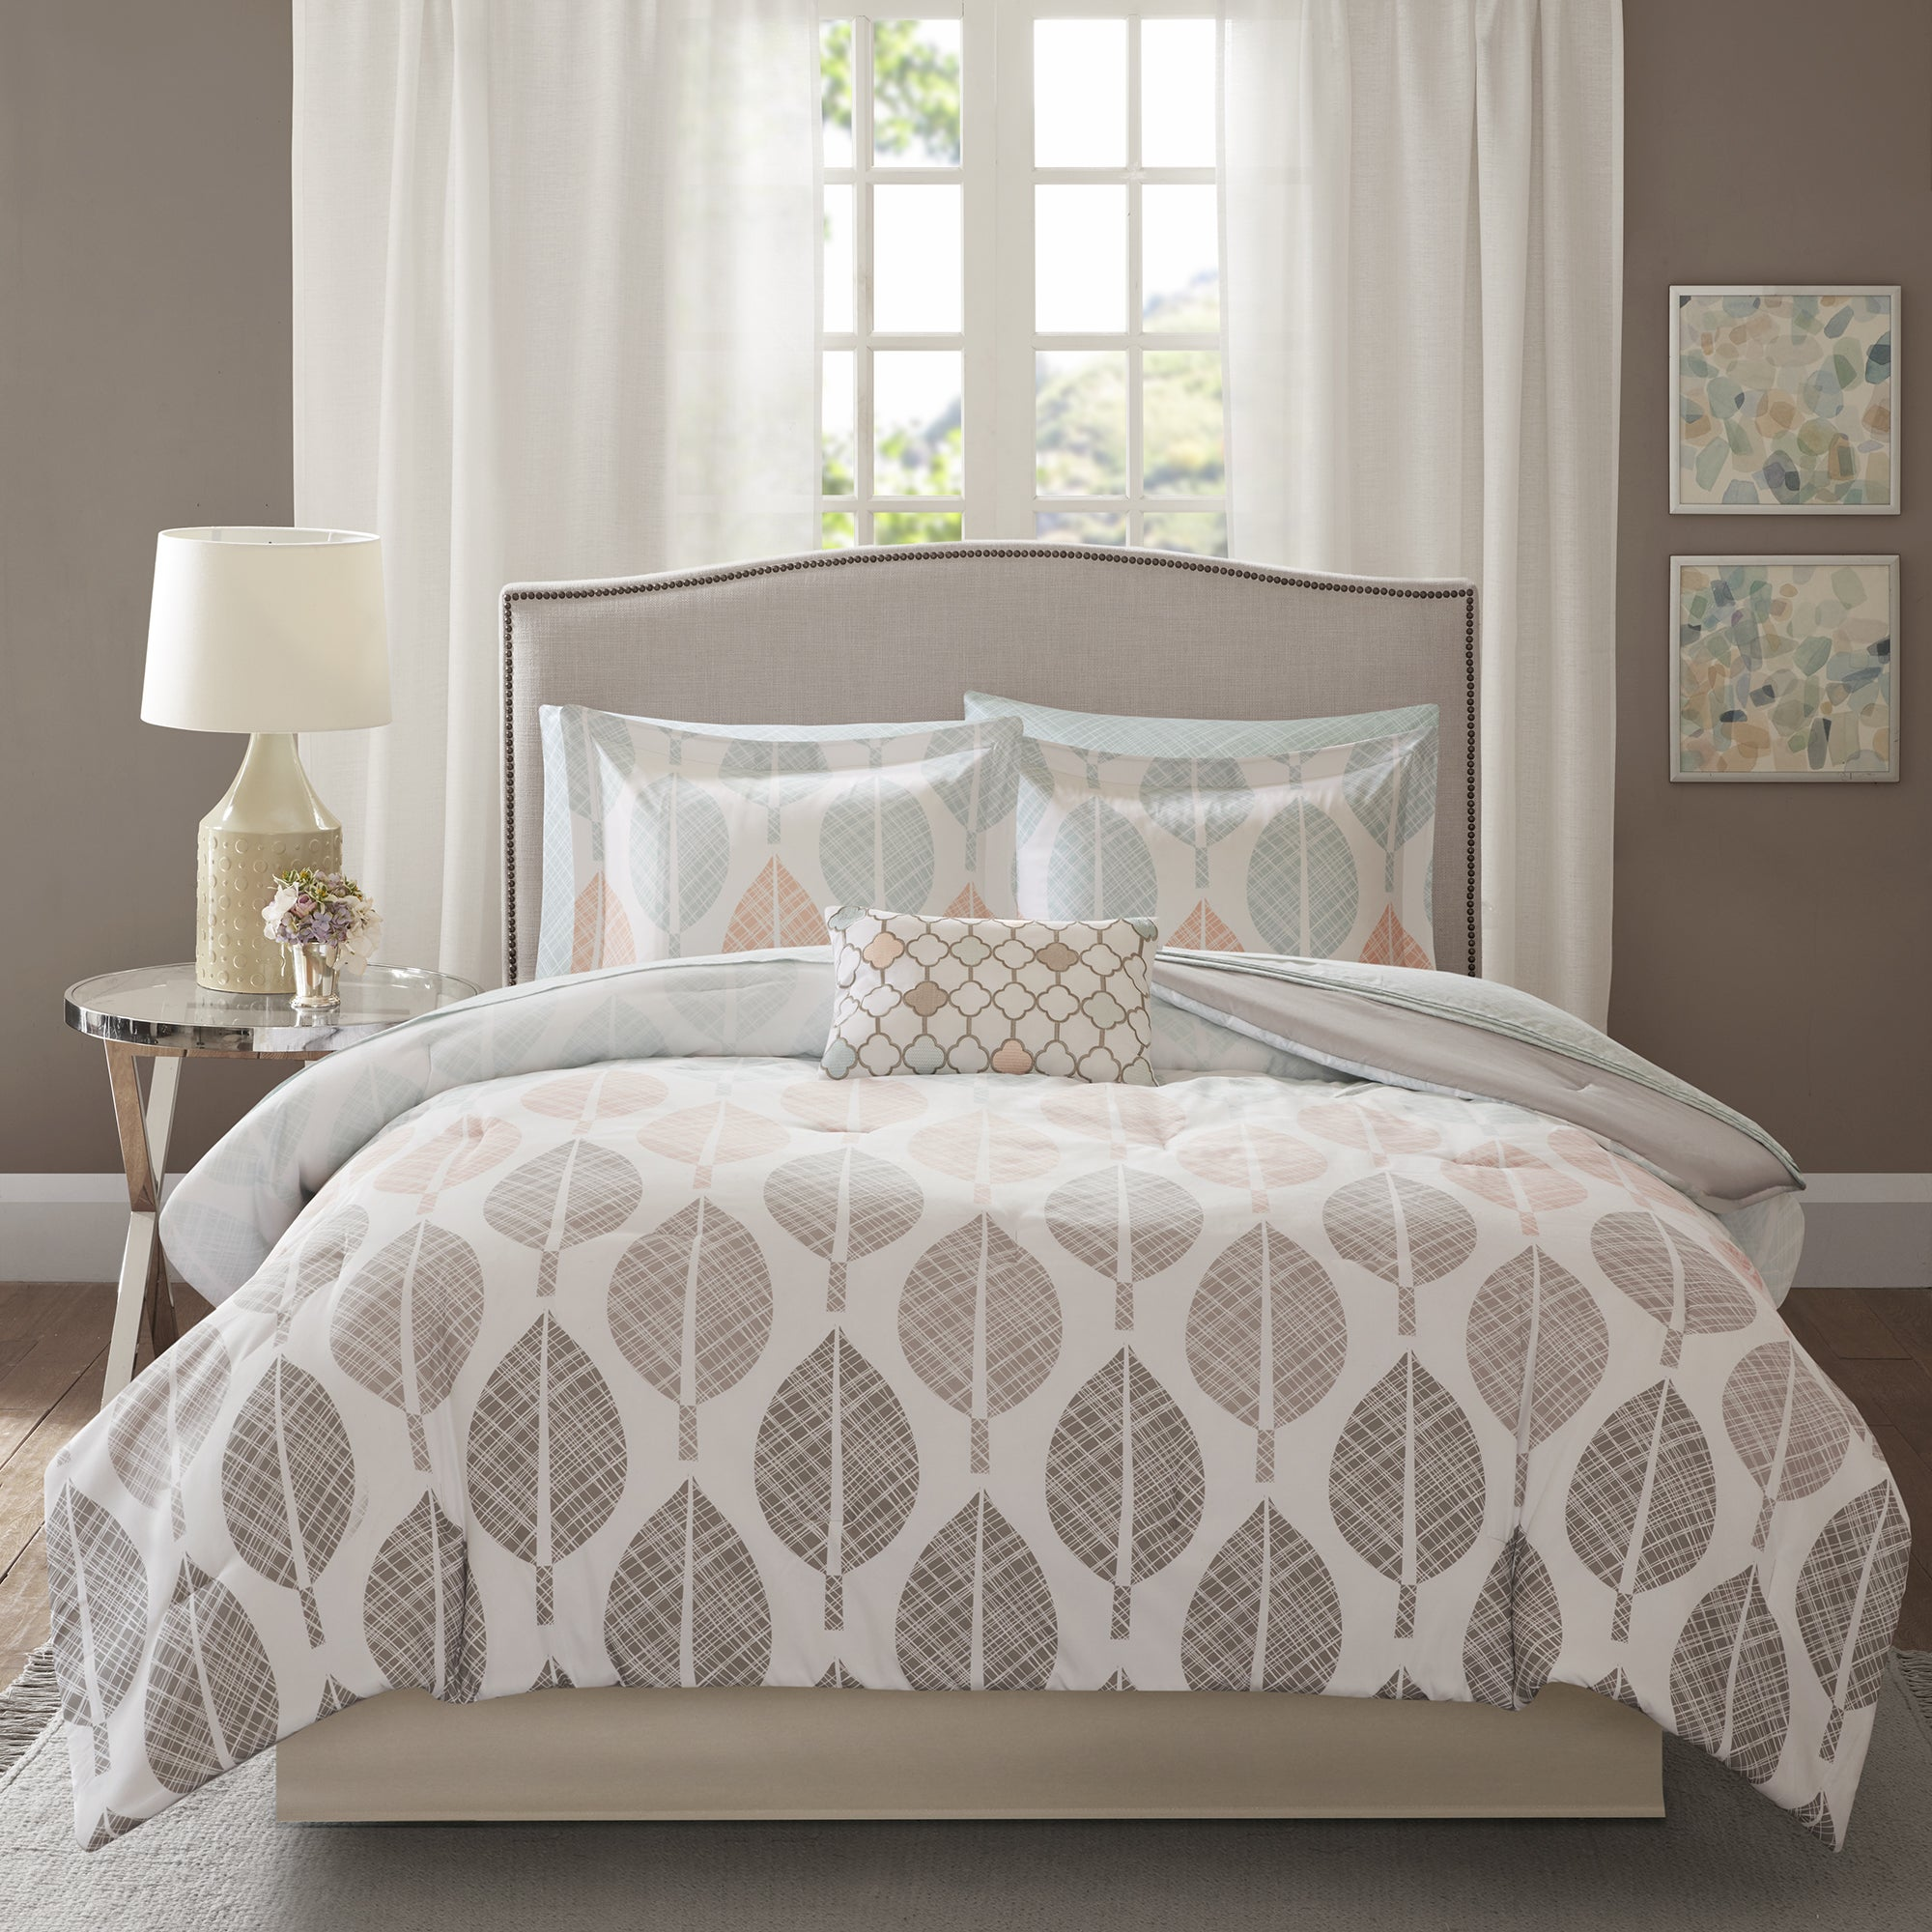 645a401ed Madison Park Essentials Pelham Bay Coral and Green Complete Comforter and  Cotton Sheet Set